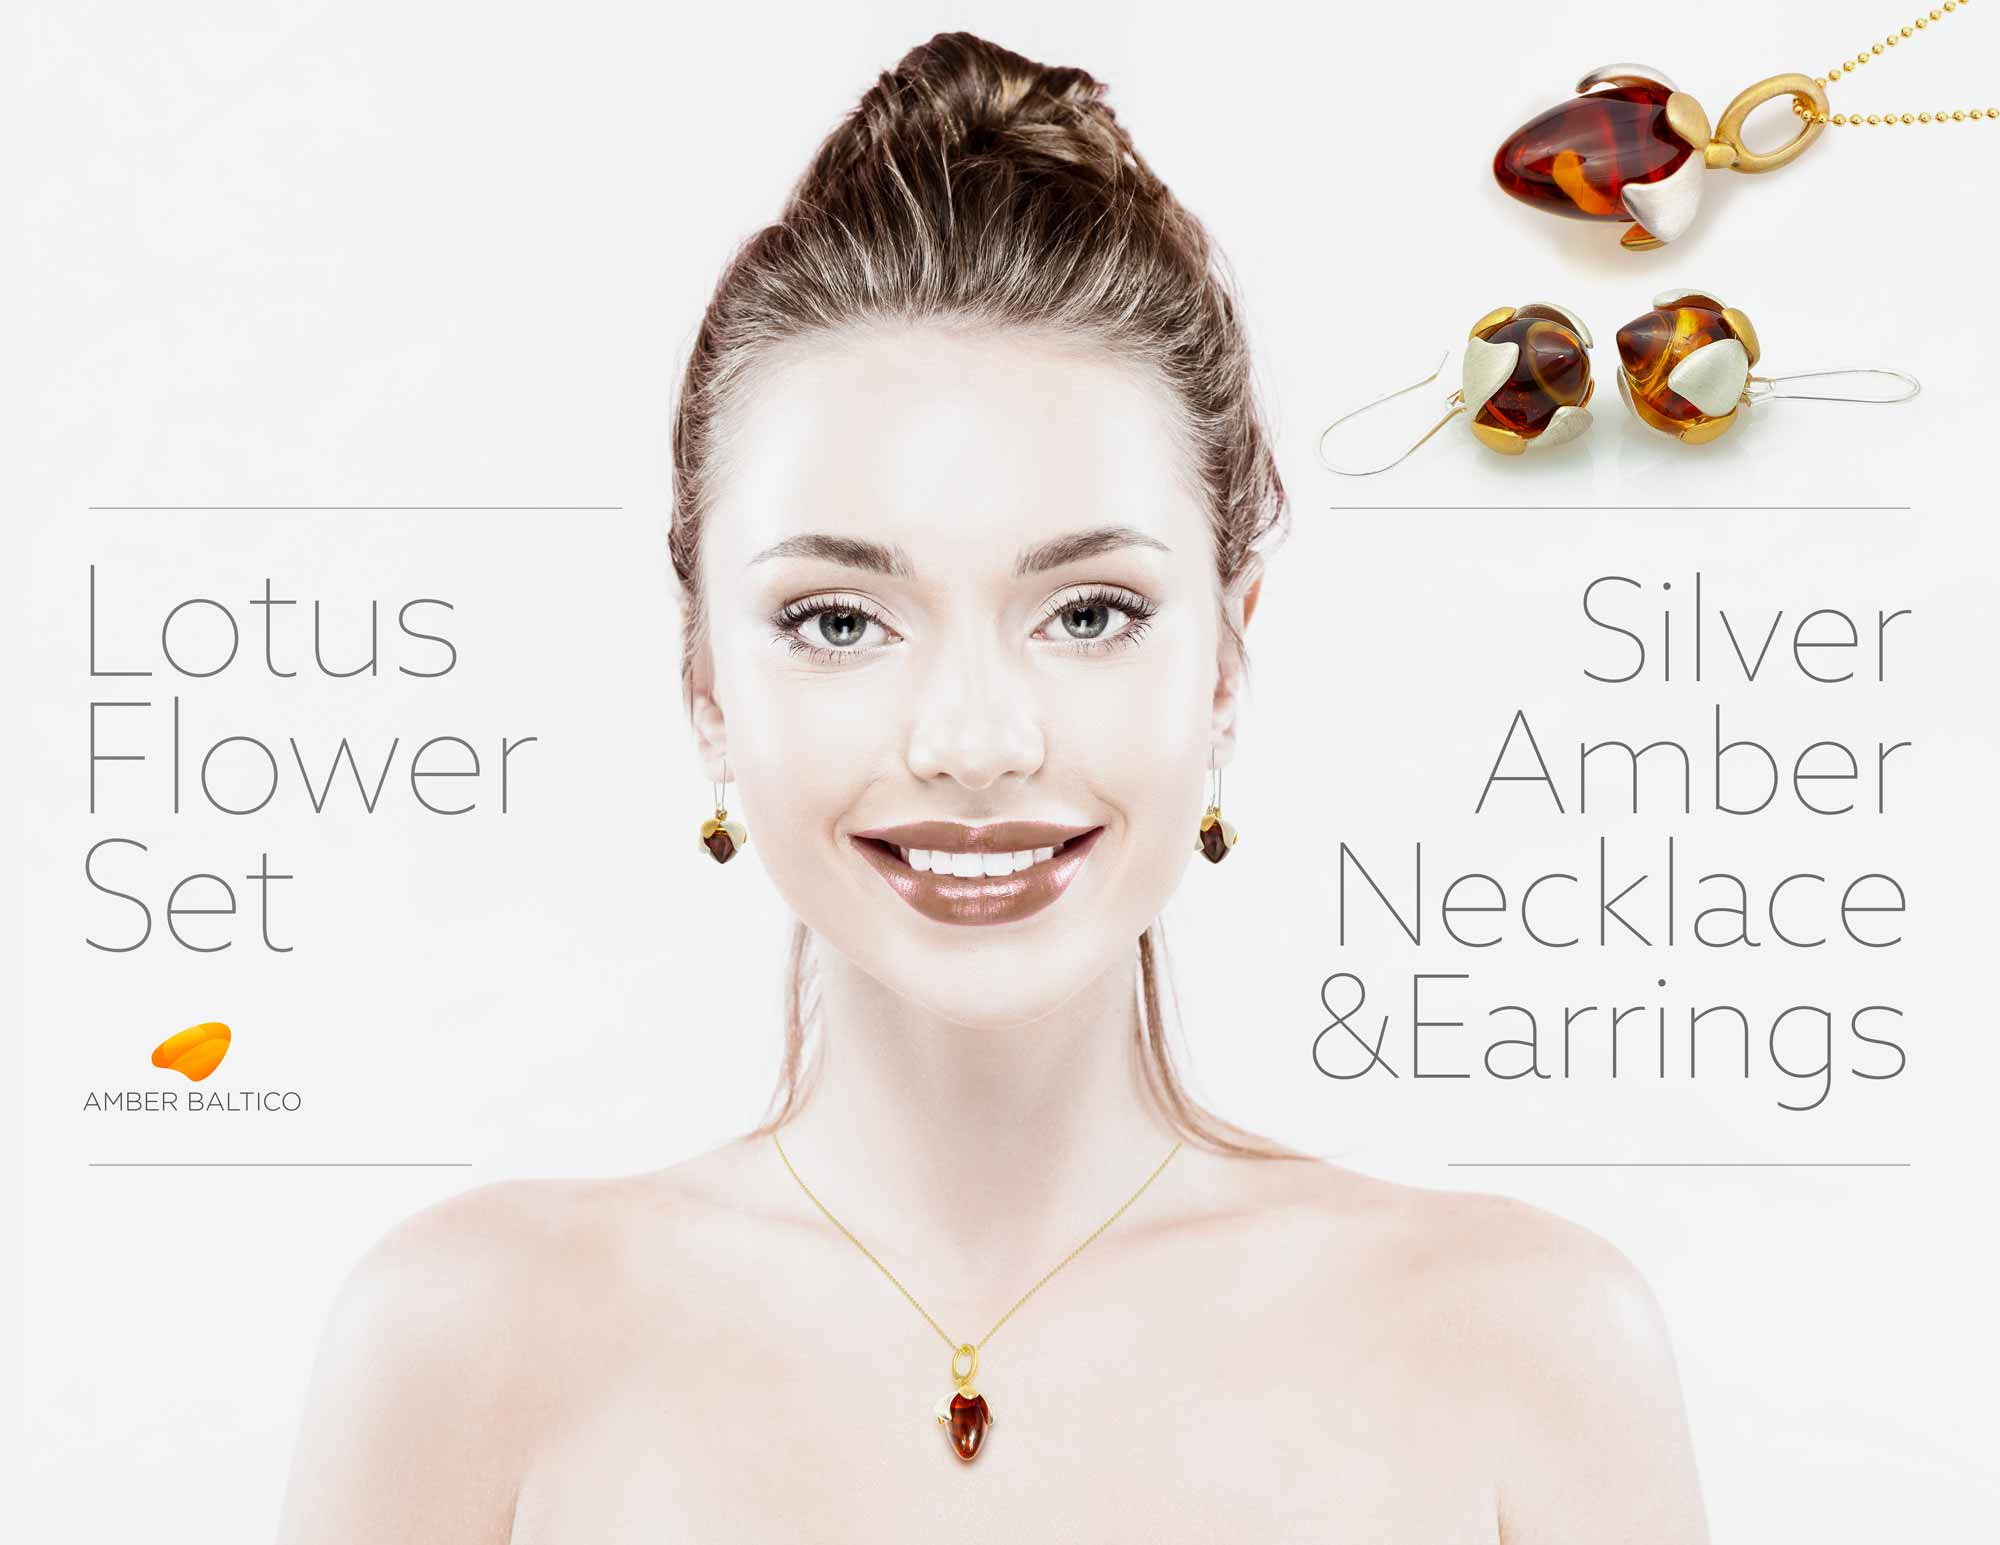 Amber Earrings, Amber Necklace, Amber Jewelry